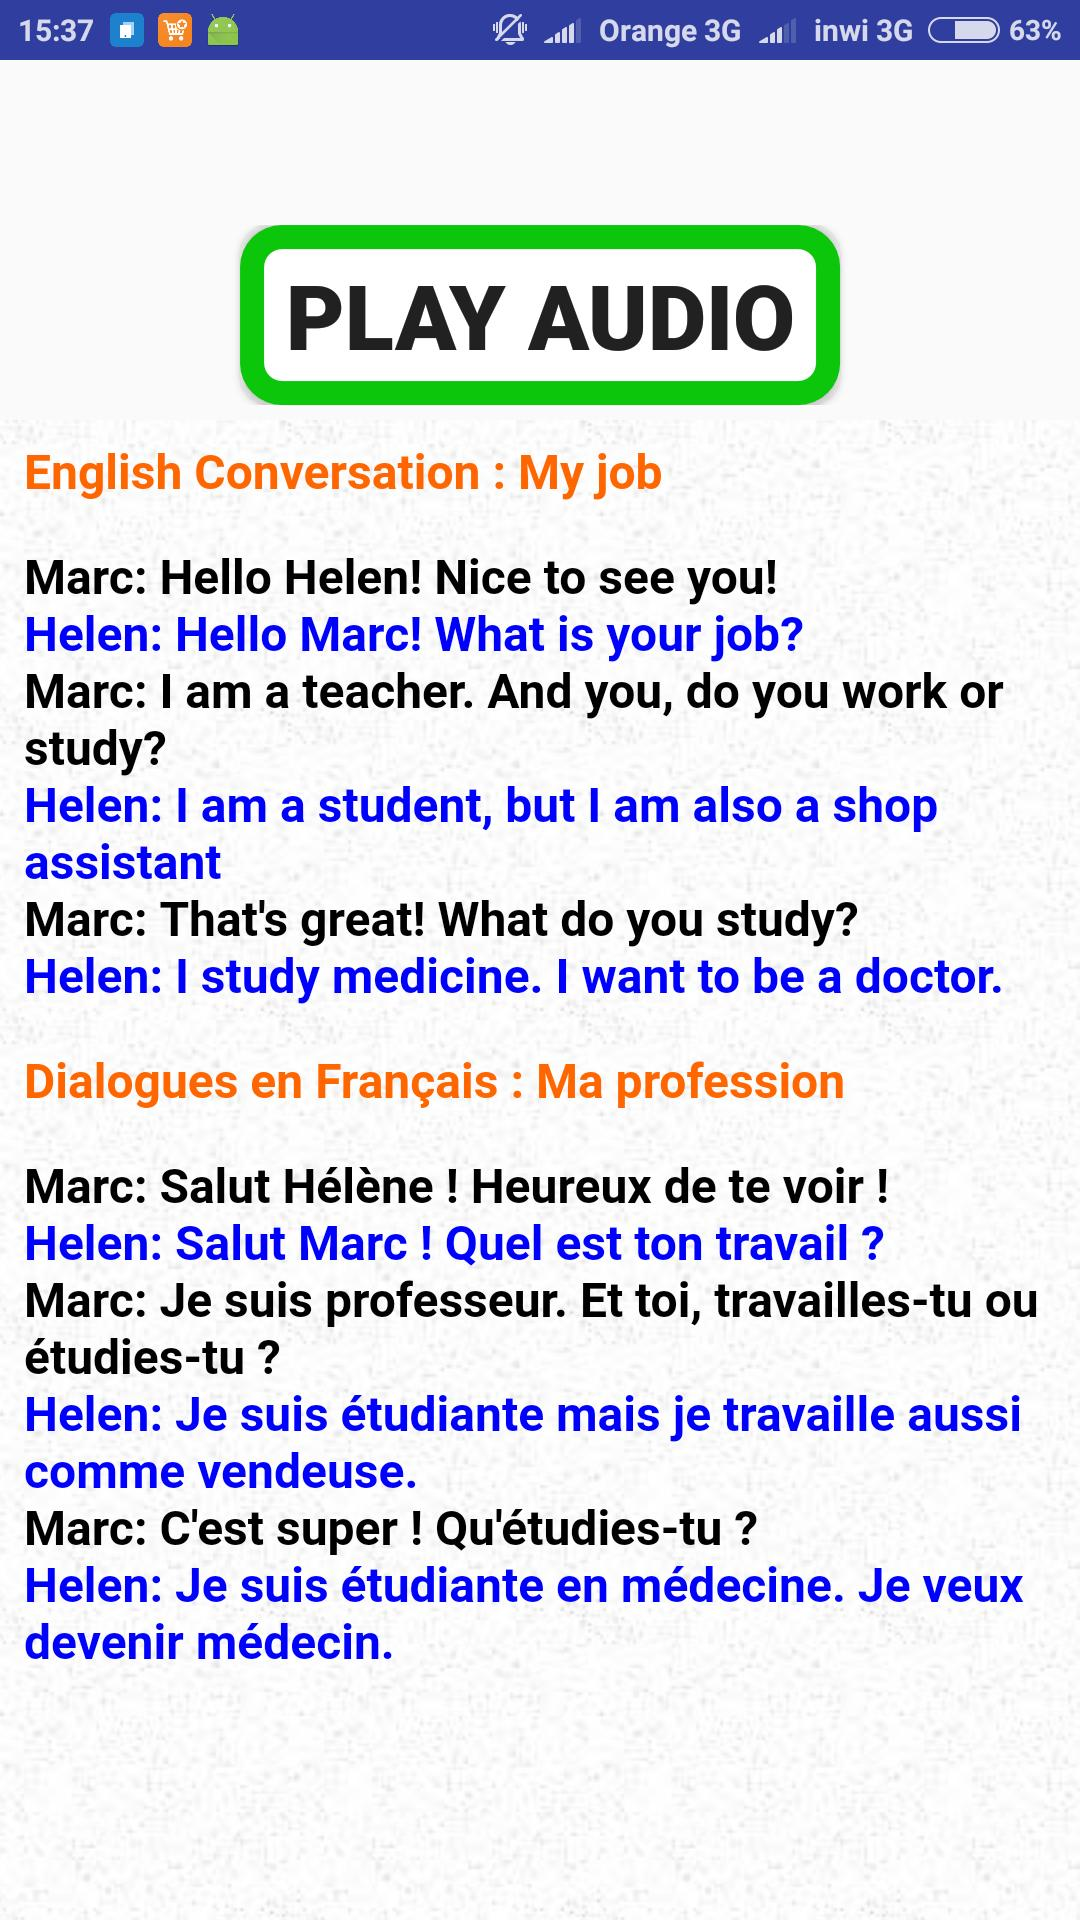 conversation english french for Android - APK Download